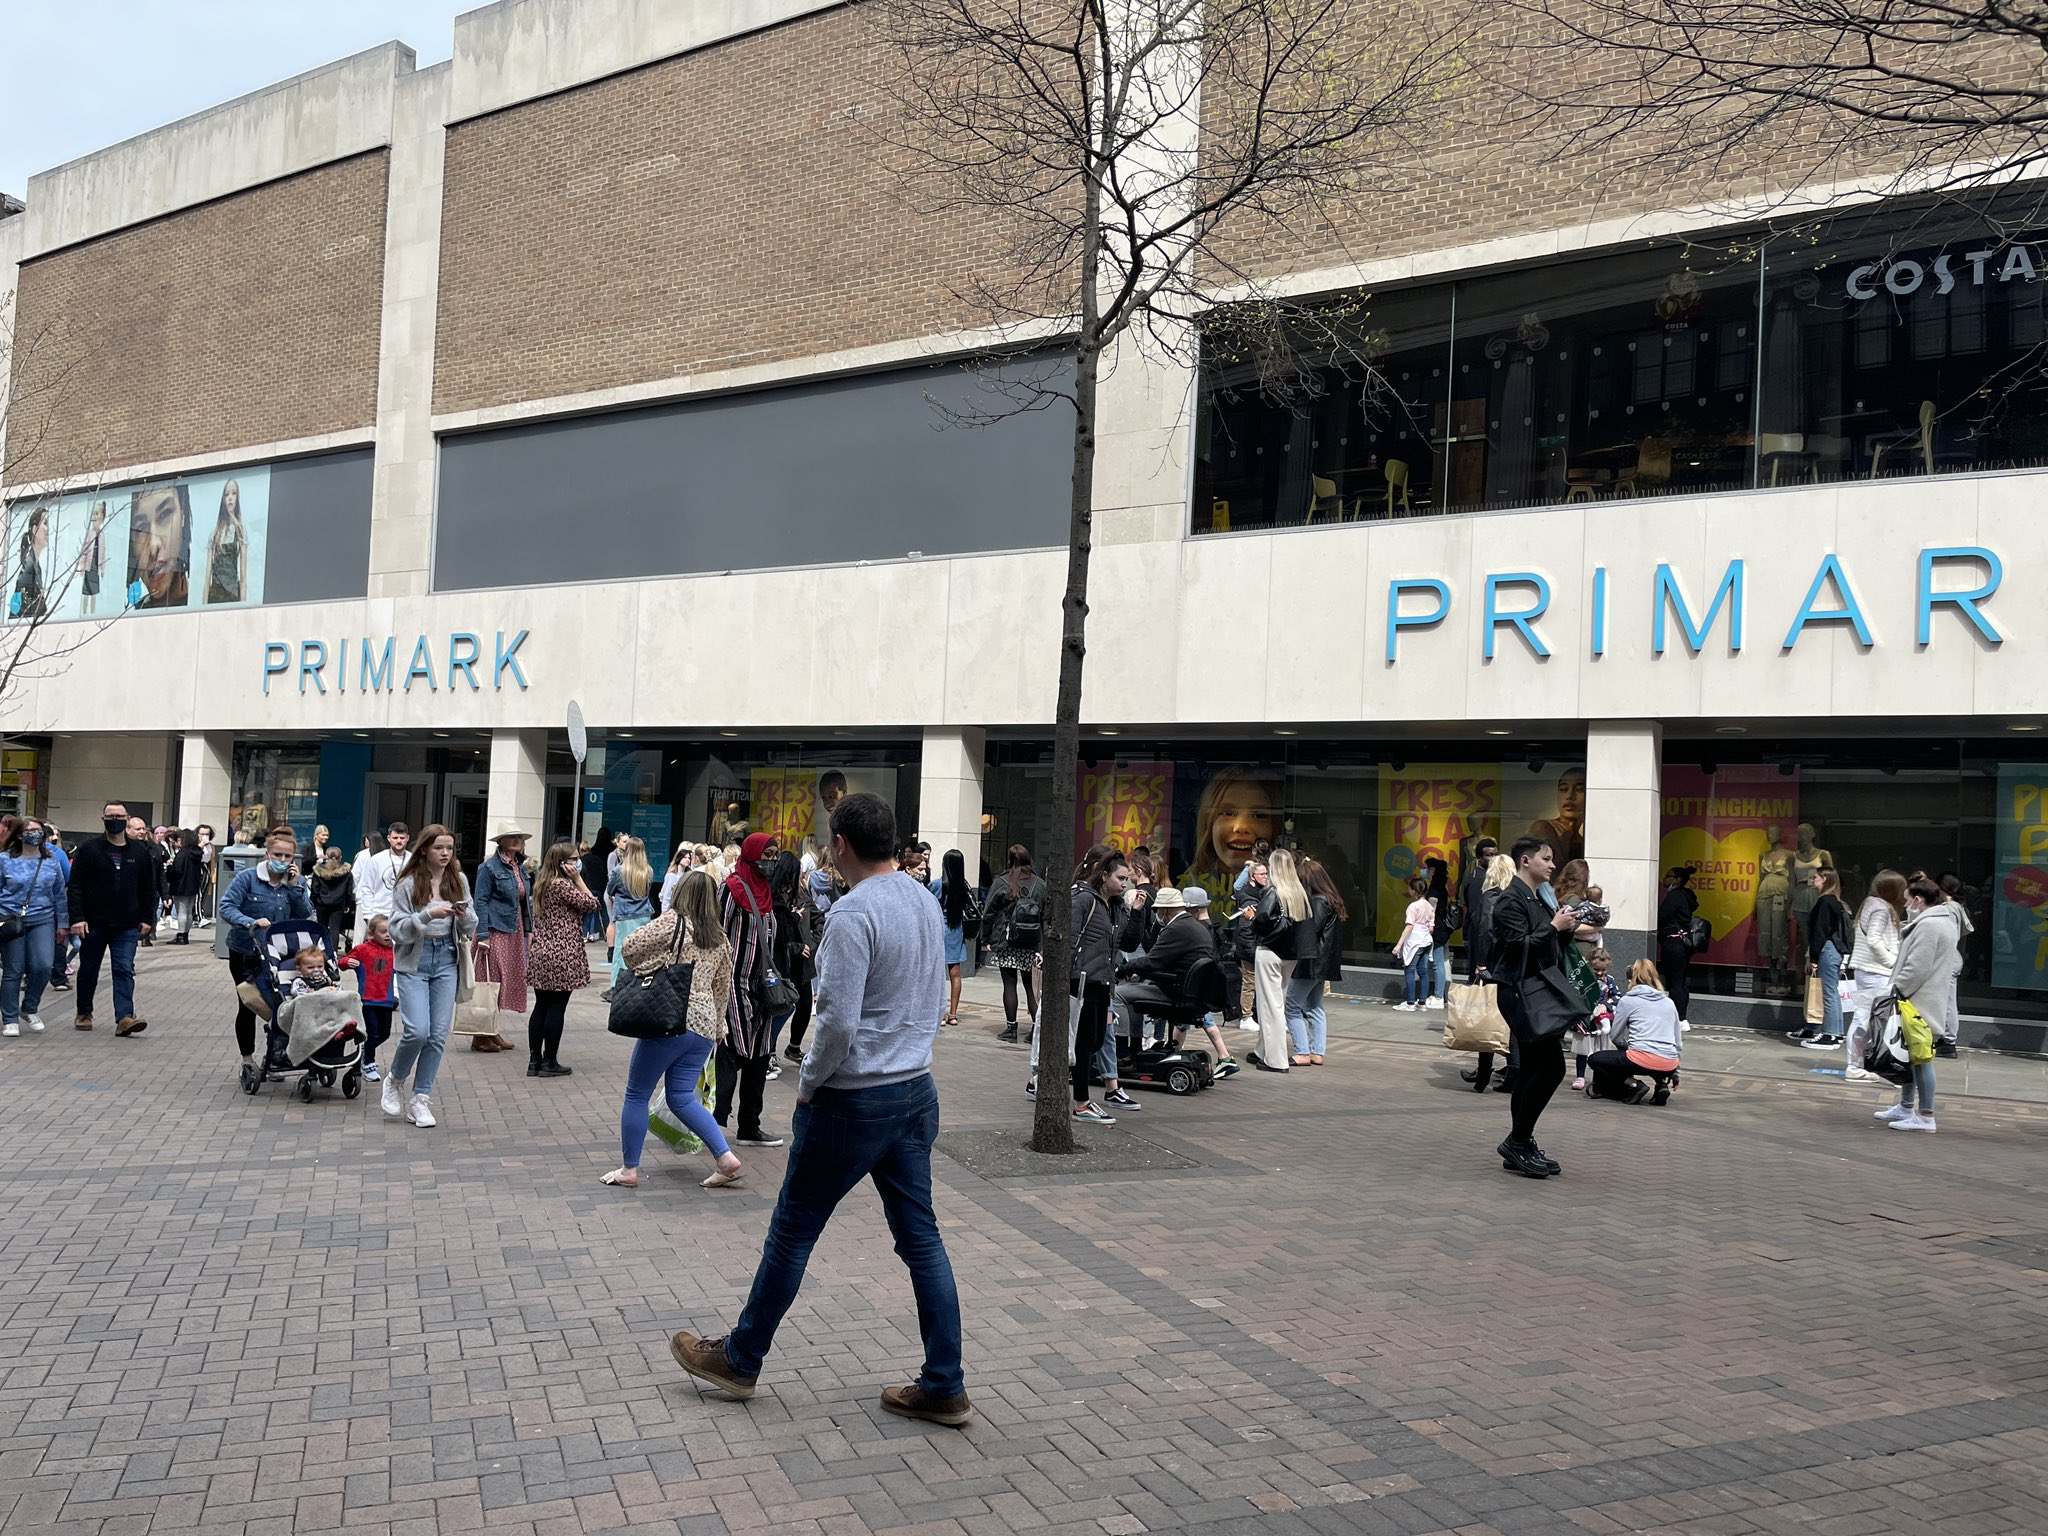 Primark Shoppers Literally Stripping Off in Store to Try on Clothes